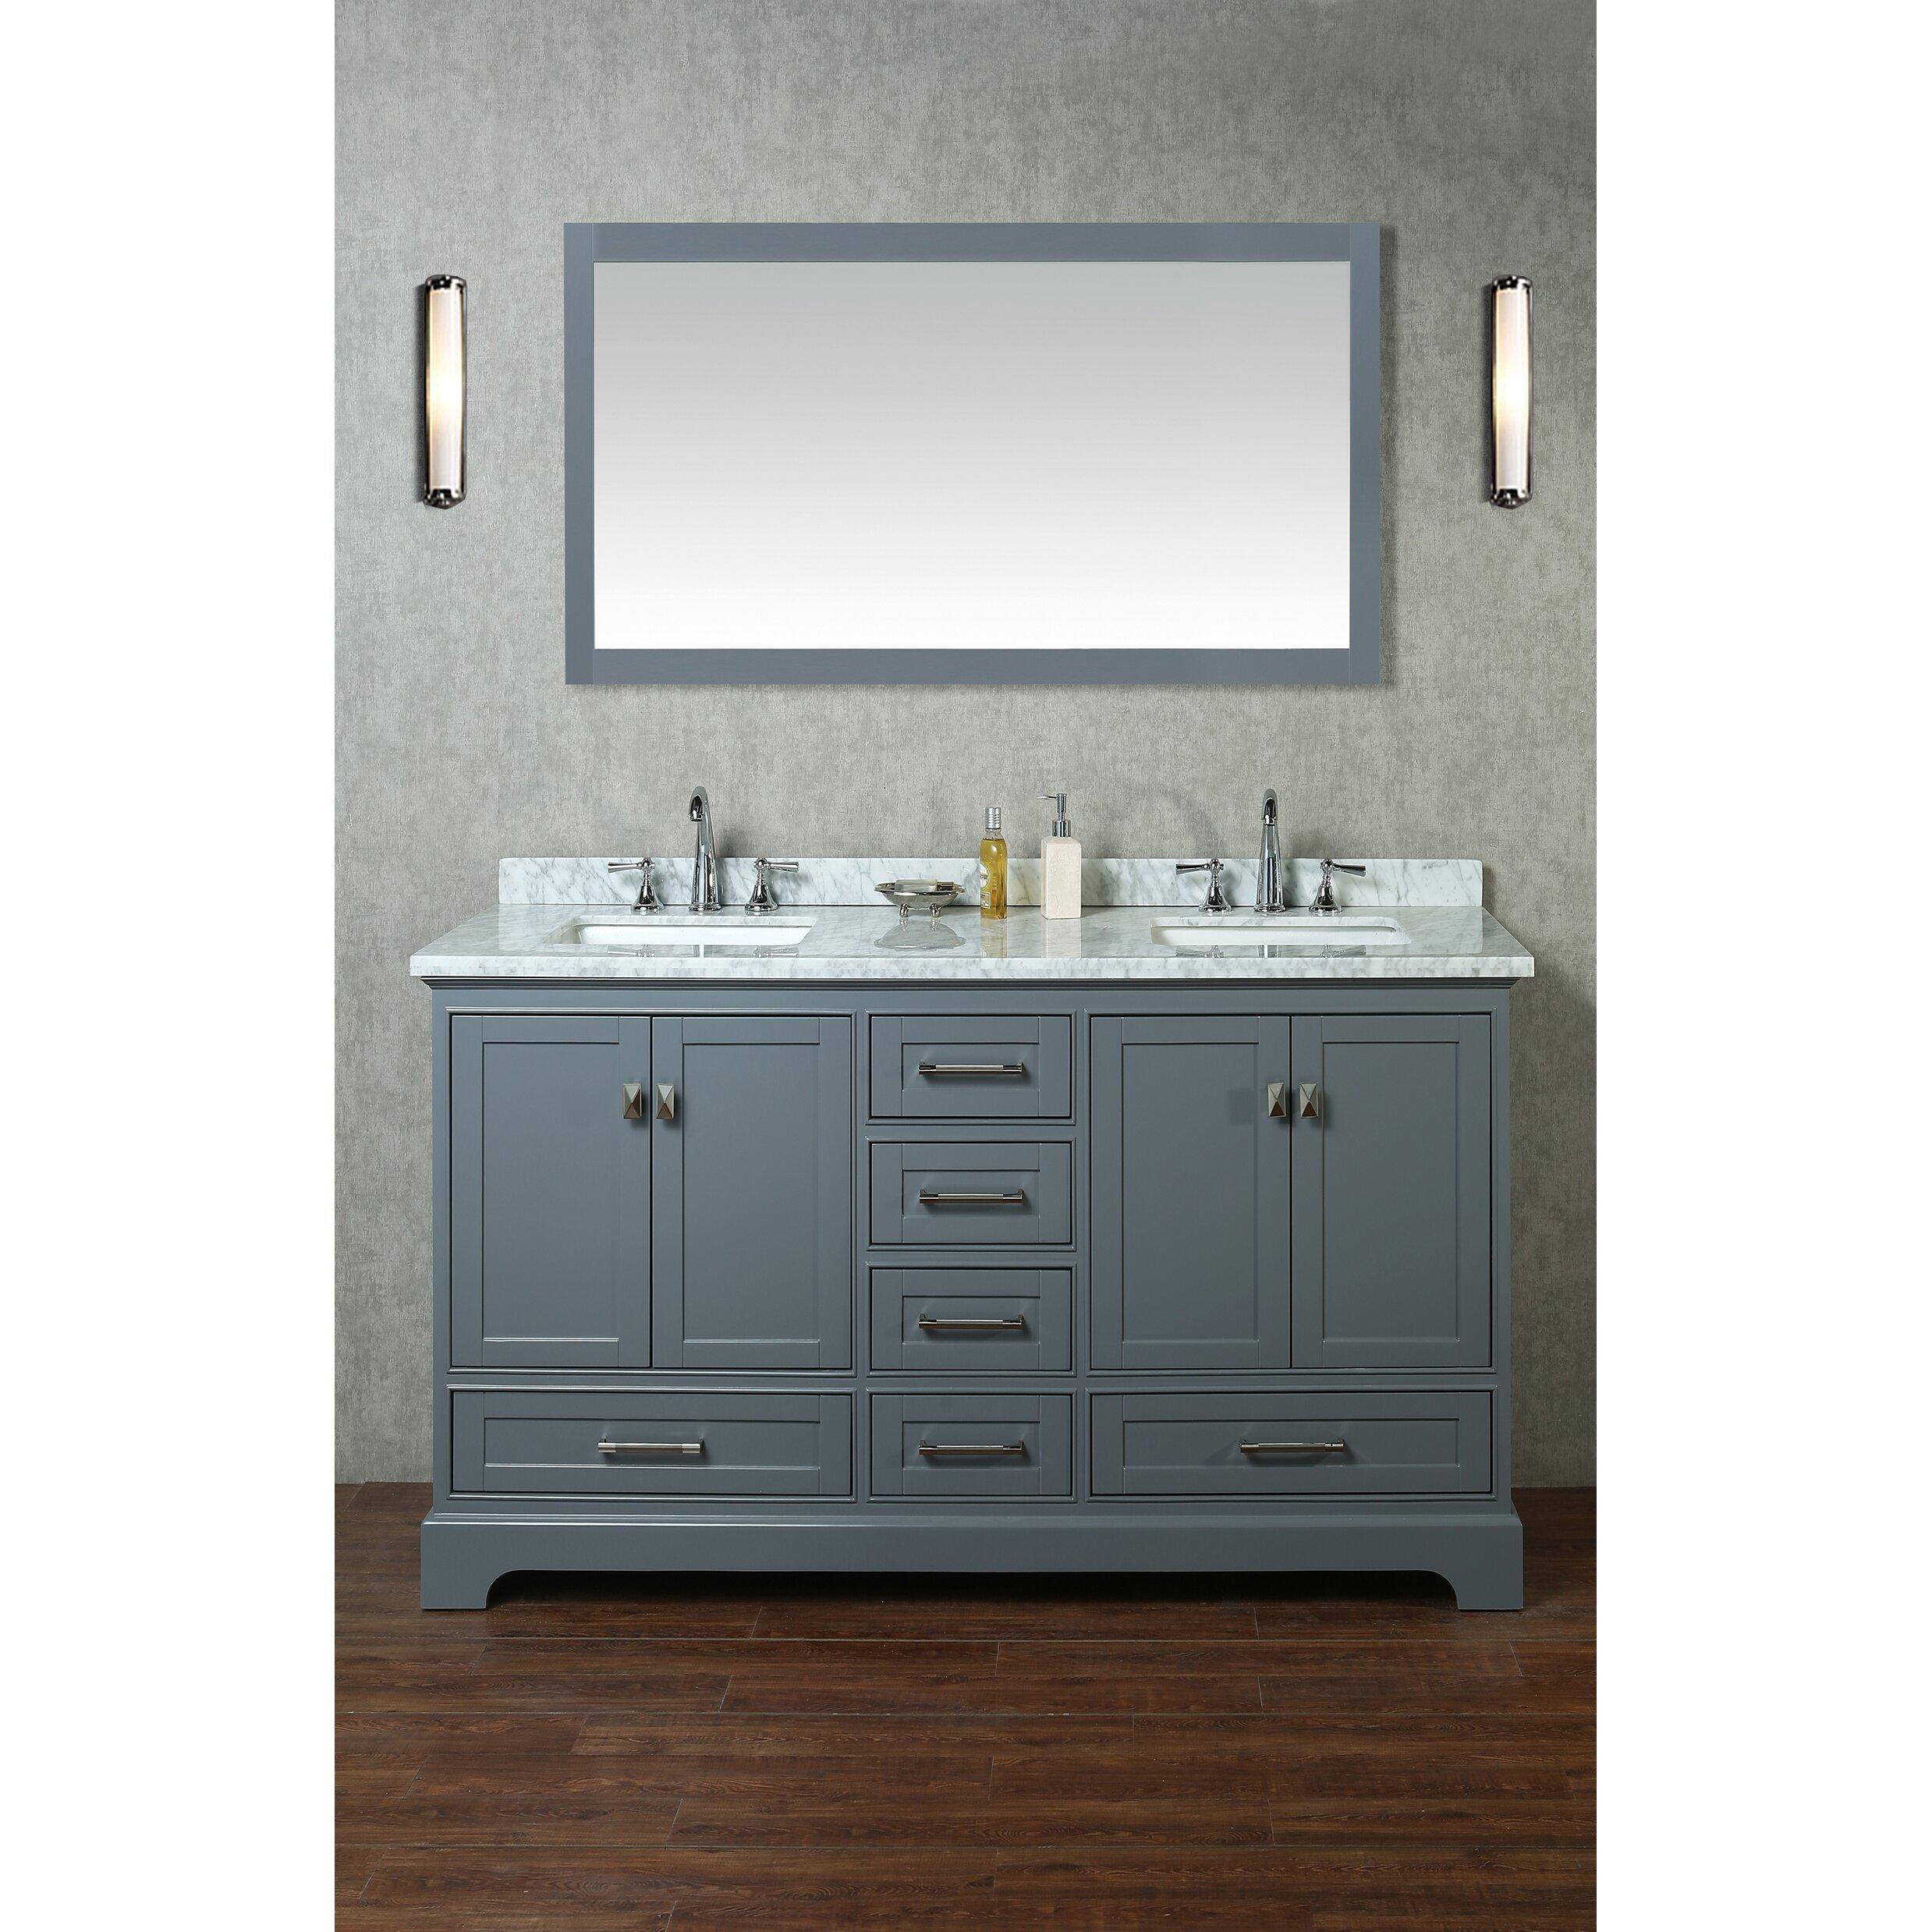 Great Rent A Bathroom Perth Tall 3d Floor Tiles For Bathroom India Shaped Bathroom Wall Fixtures Home Depot Bath Renovation Youthful Delta Faucets For Bathtub SoftKitchen And Bathroom Design Certificate DCOR Design Barrington 60\u0026quot; Double Sink Bathroom Vanity Set With ..